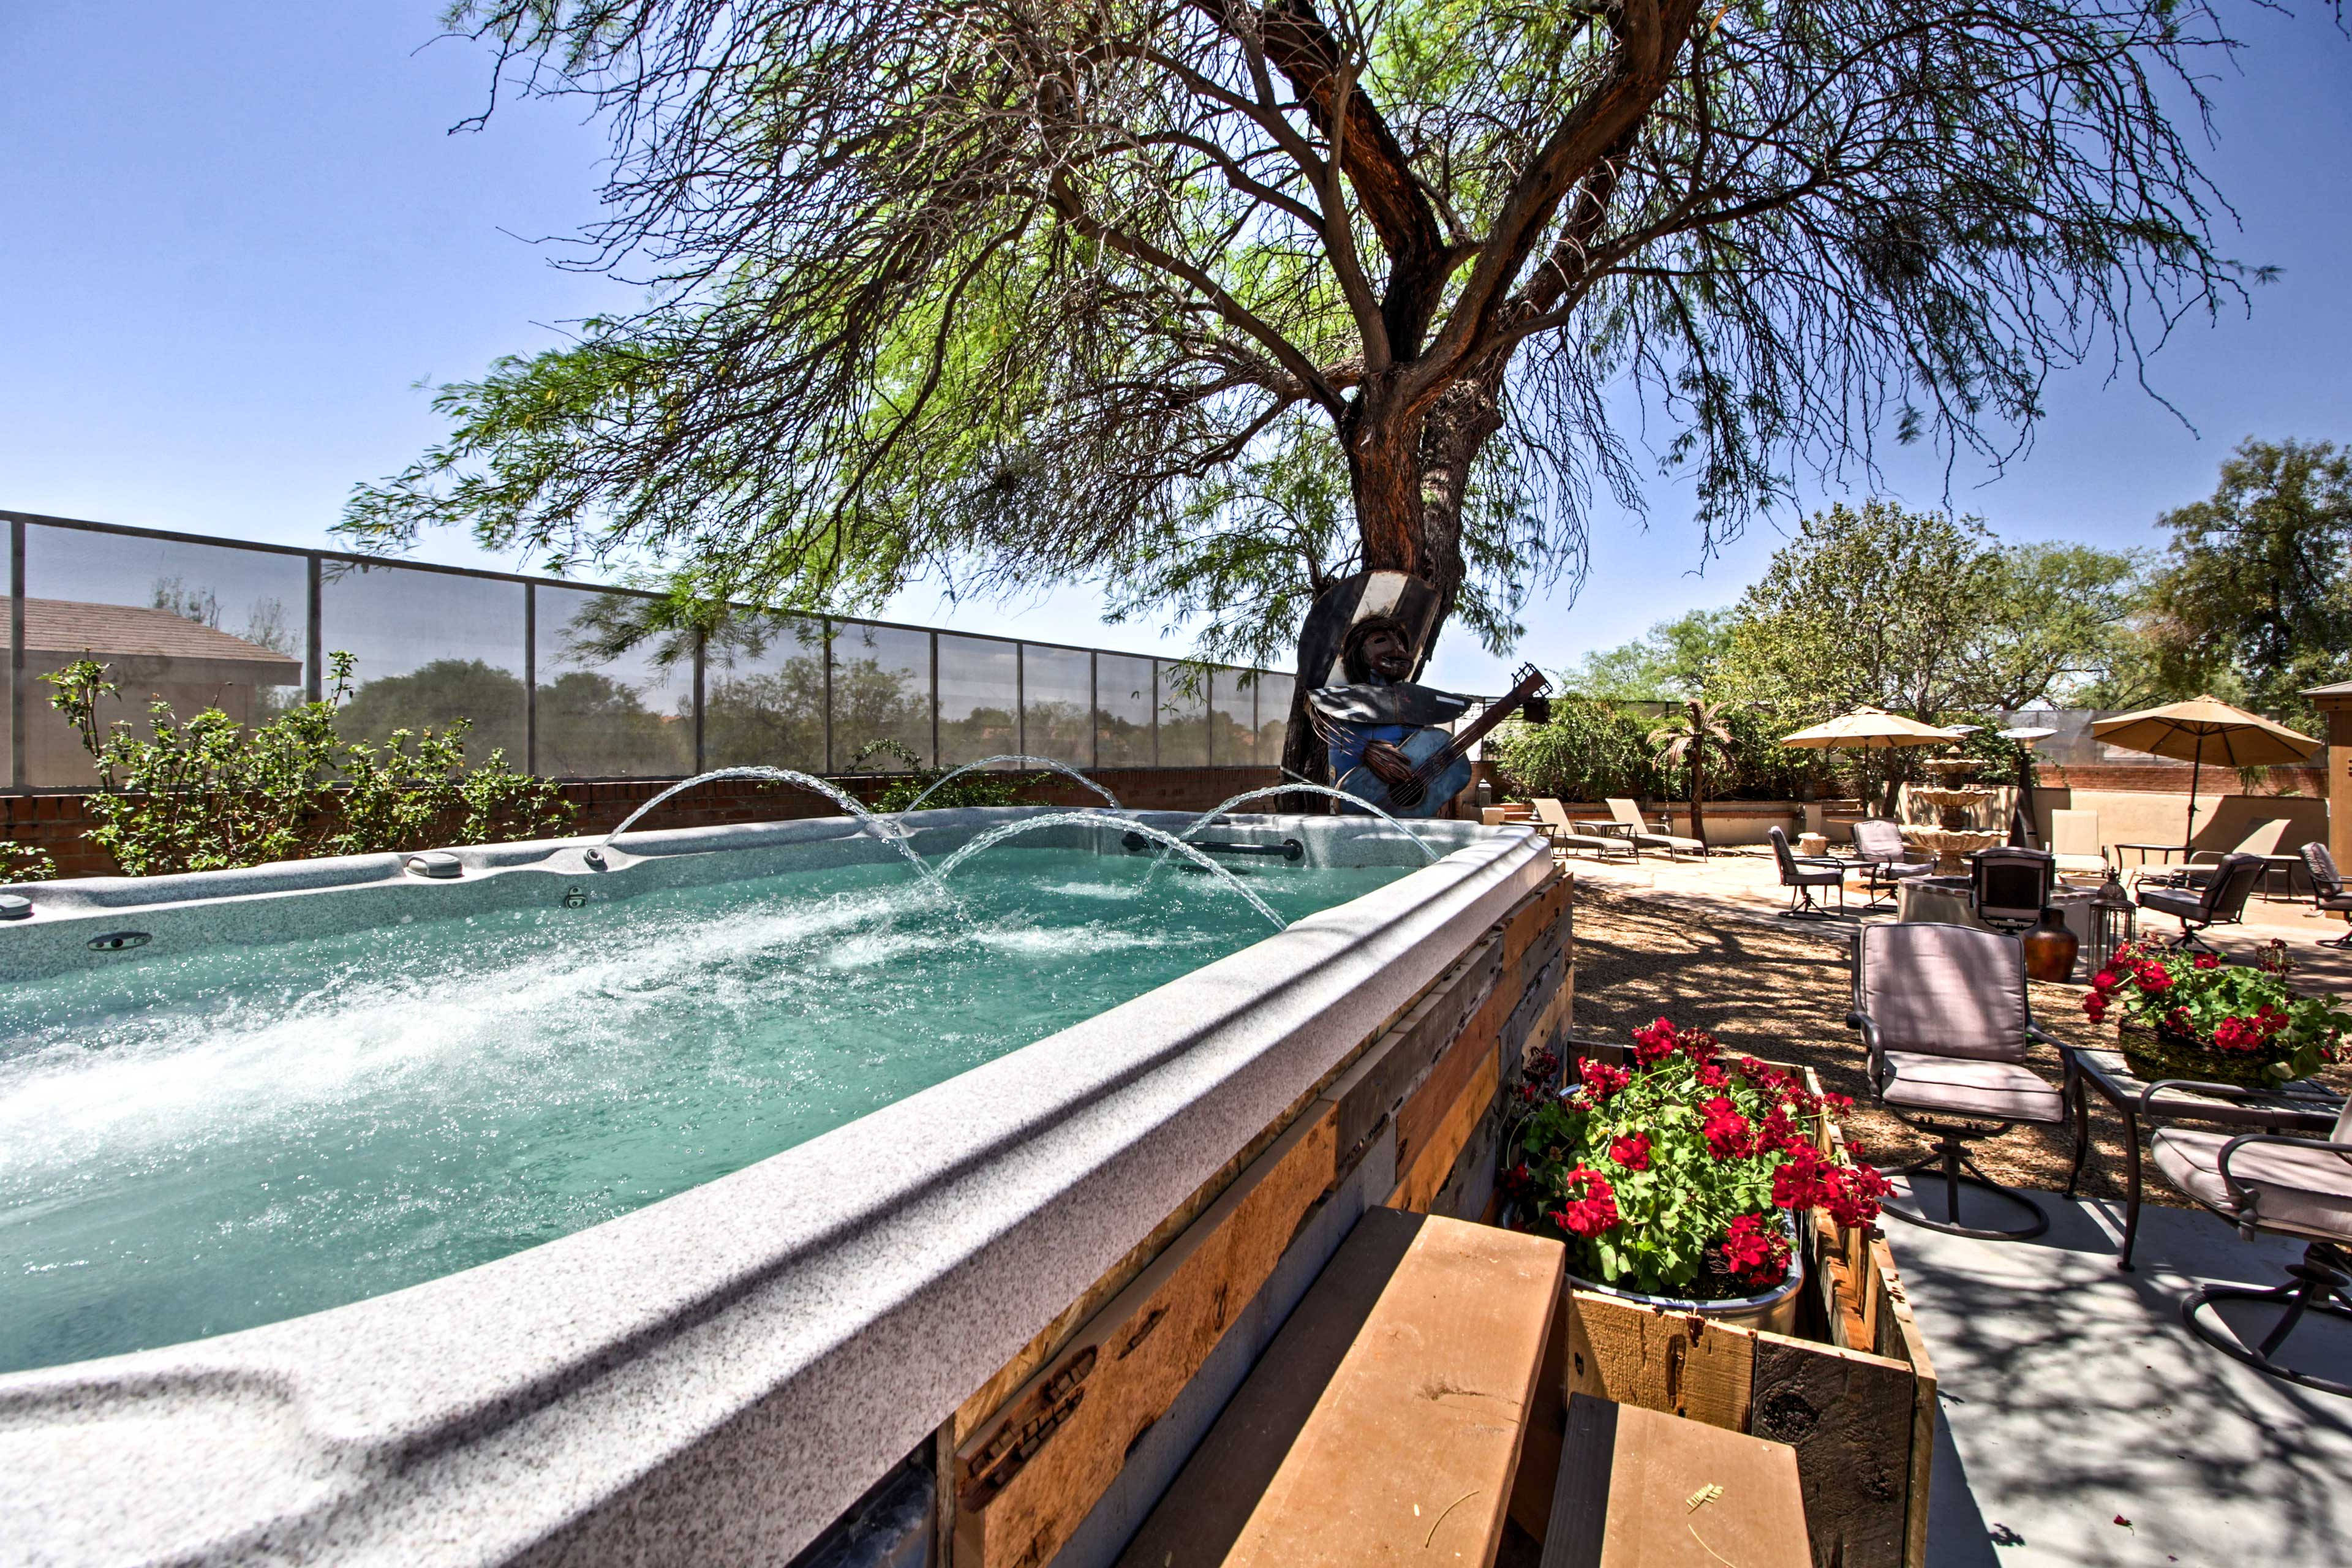 Enjoy a shared hot tub, outdoor seating areas, and a desert botanical garden!